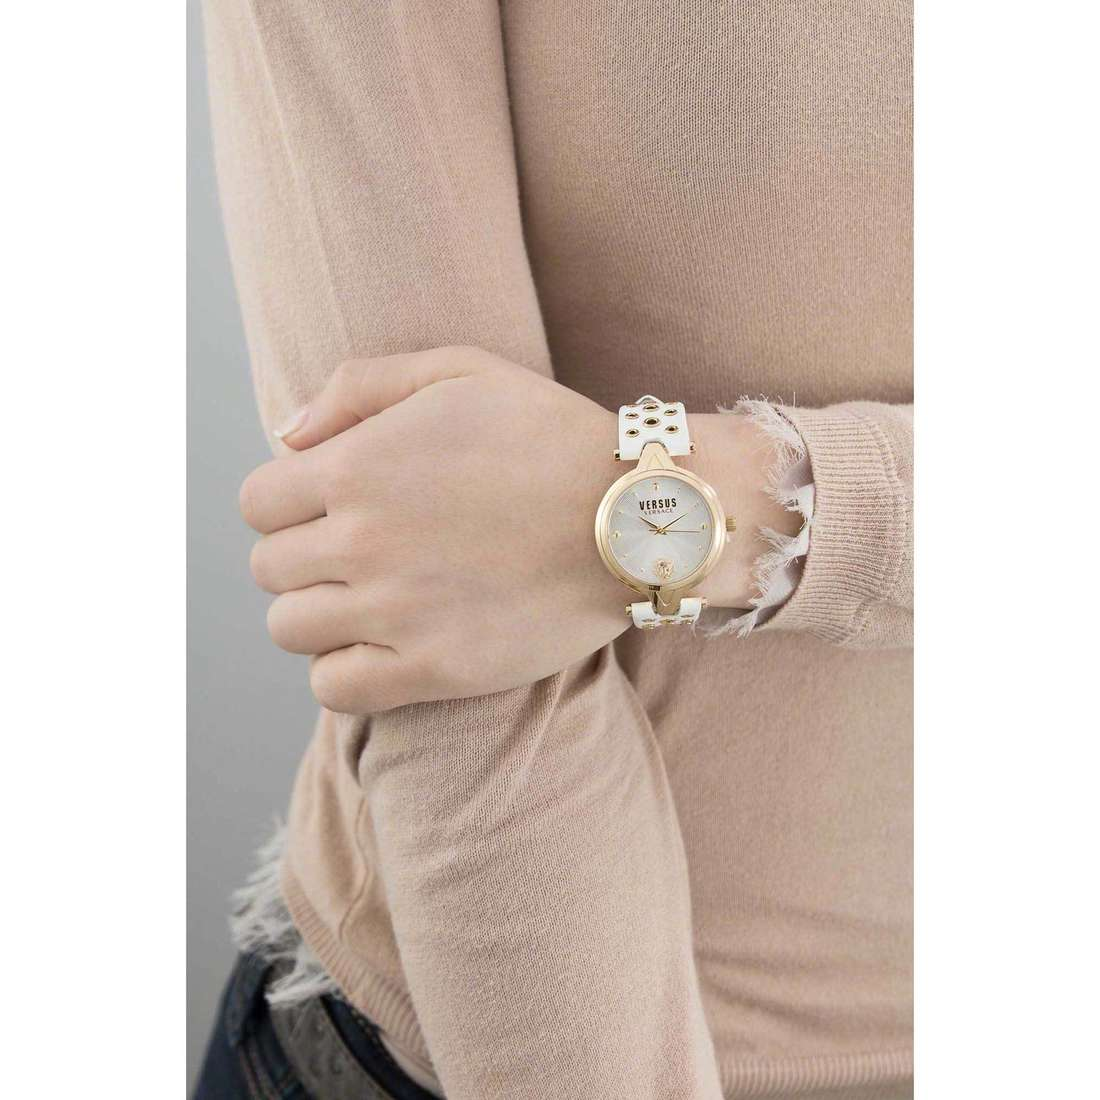 Versus only time Eyelets woman SCI040016 photo wearing